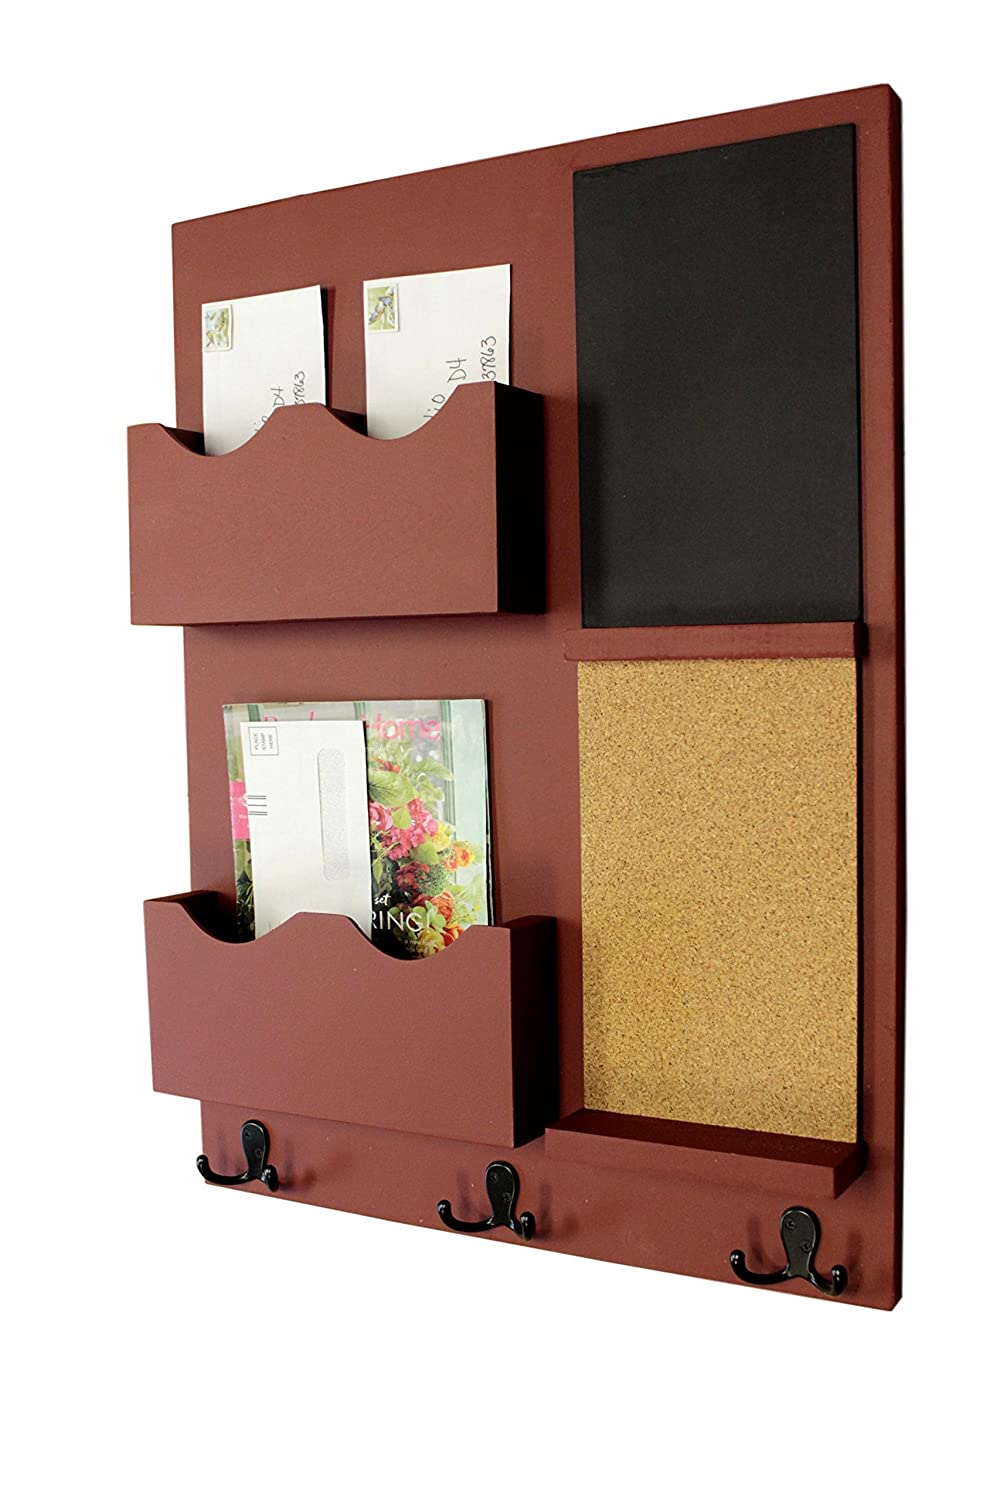 Amazon.com: Legacy Studio Decor Mail Organizer Cork Board ...